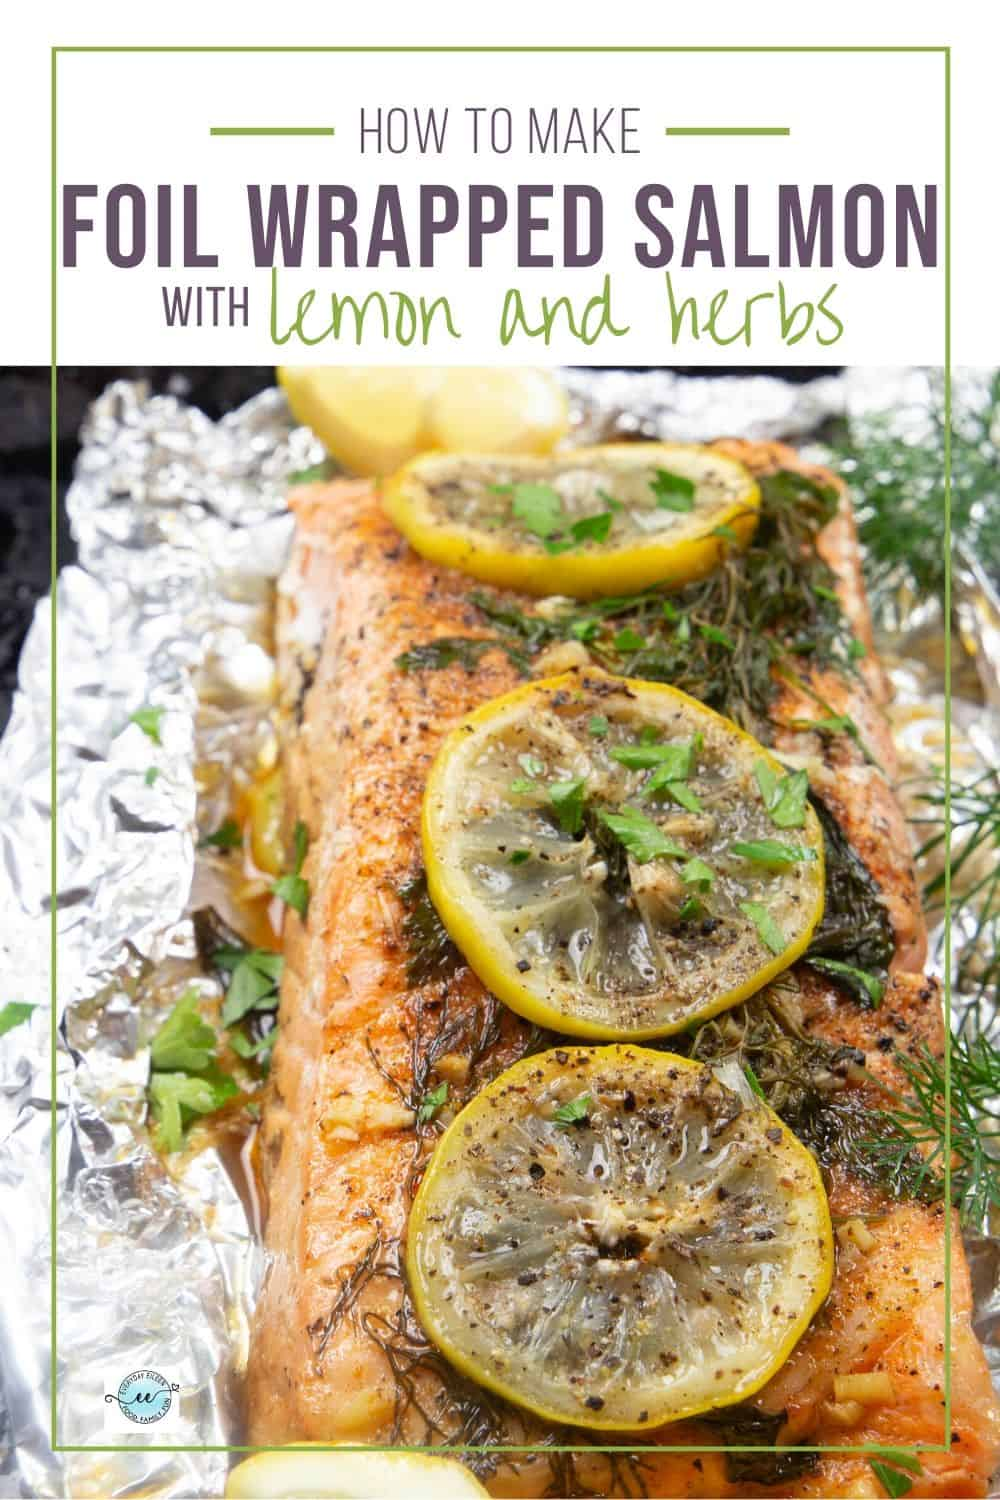 Foil-wrapped salmon with lemon and herbs can be baked or grilled for tender fish every time. Use your favorite herbs and dinner is ready in 15 minutes. Enjoy numerous variations for fantastic salmon any day. #foilwrappedsalmon #easysalmonrecipe #everydayeileen via @/everydayeileen/